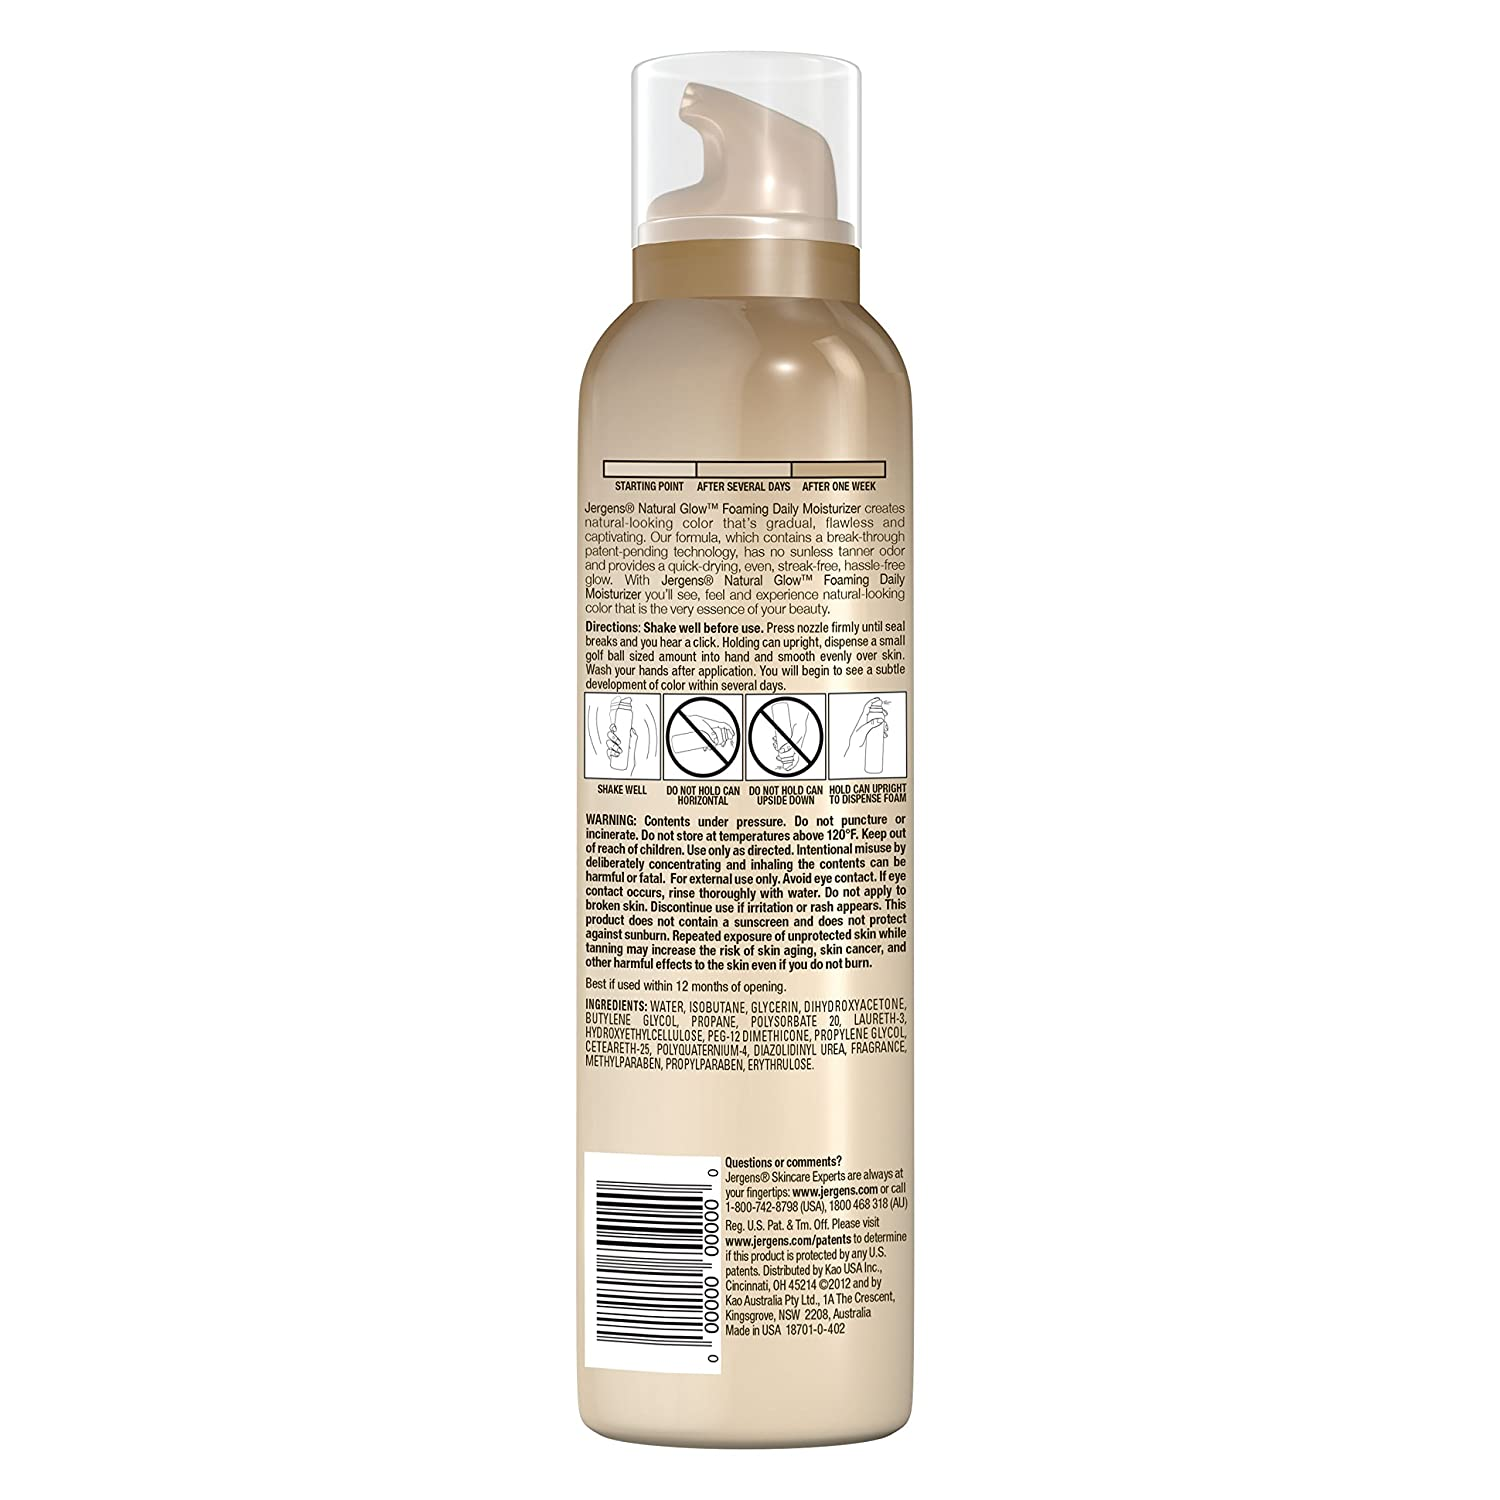 Jergens Natural Glow Foaming Daily Moisturizer for Body, Fair to Medium Skin Tones, 6.25 Ounces